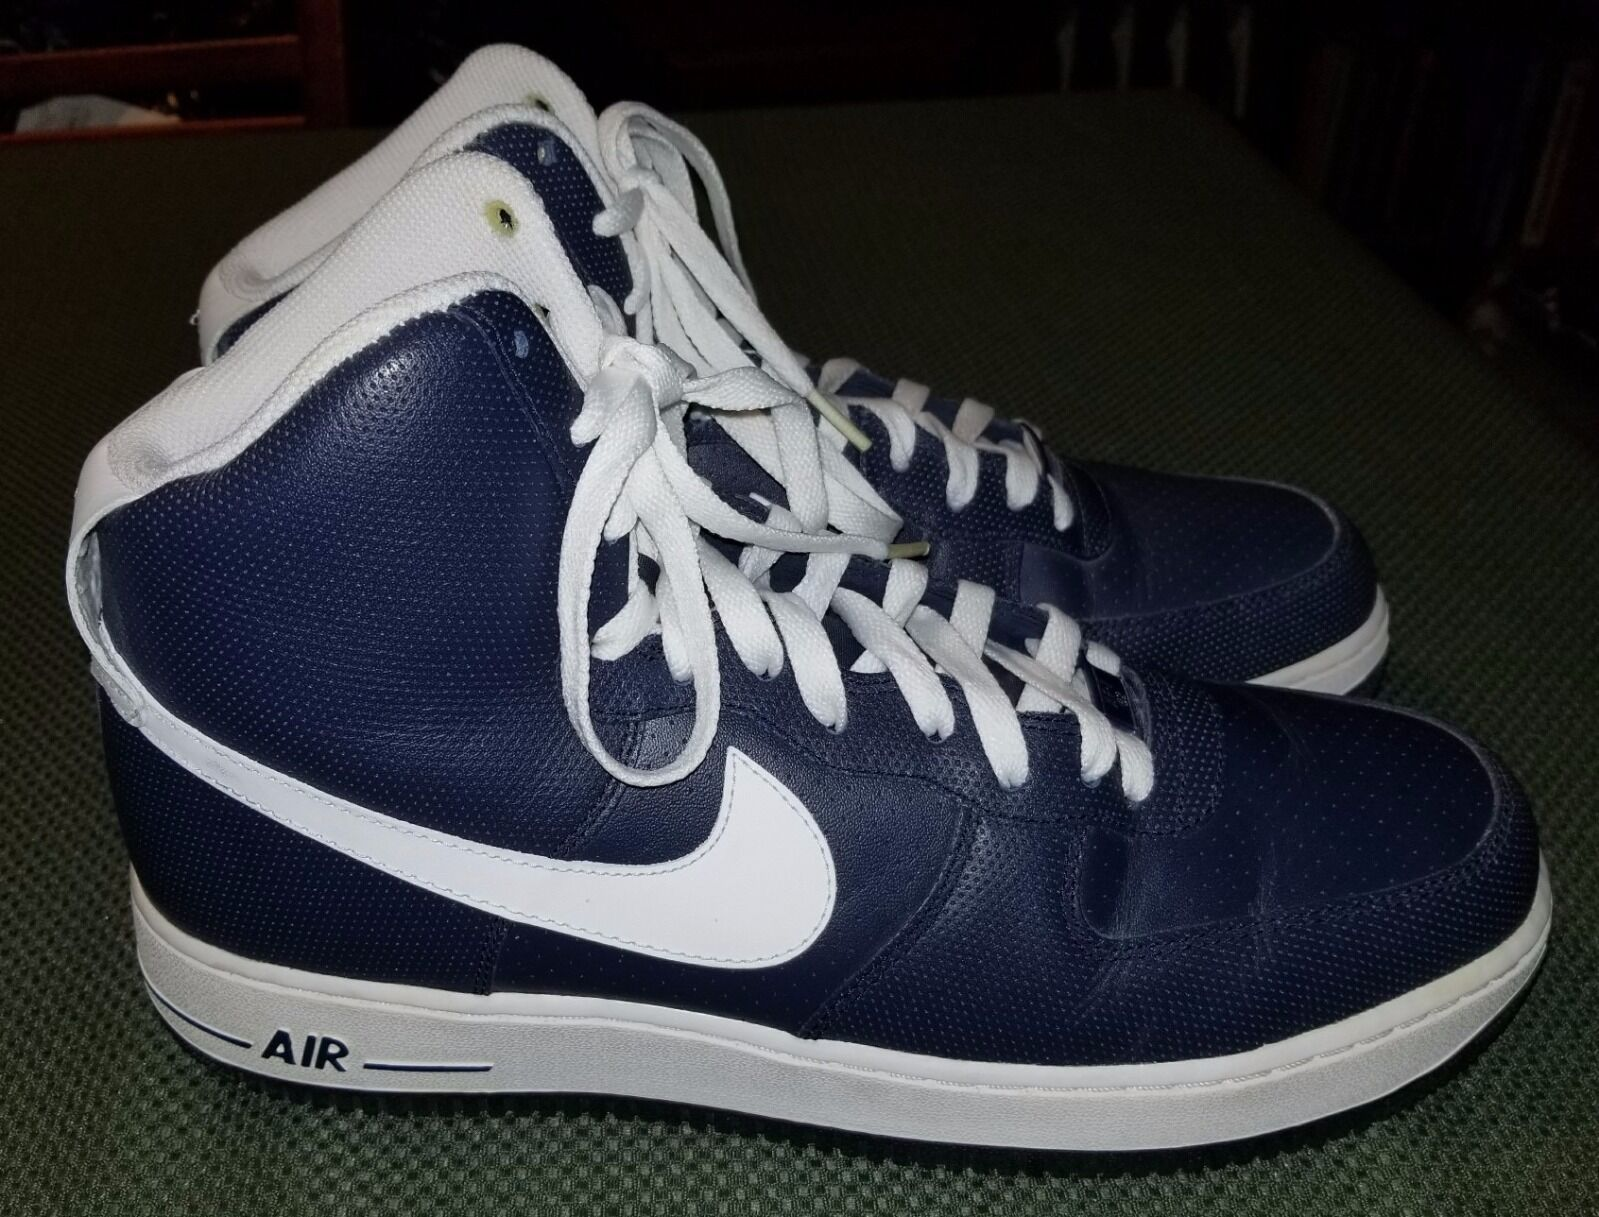 Nike Air Force 1 Mid Midnight Navy/White Size Men US 11 Sneakers Shoes